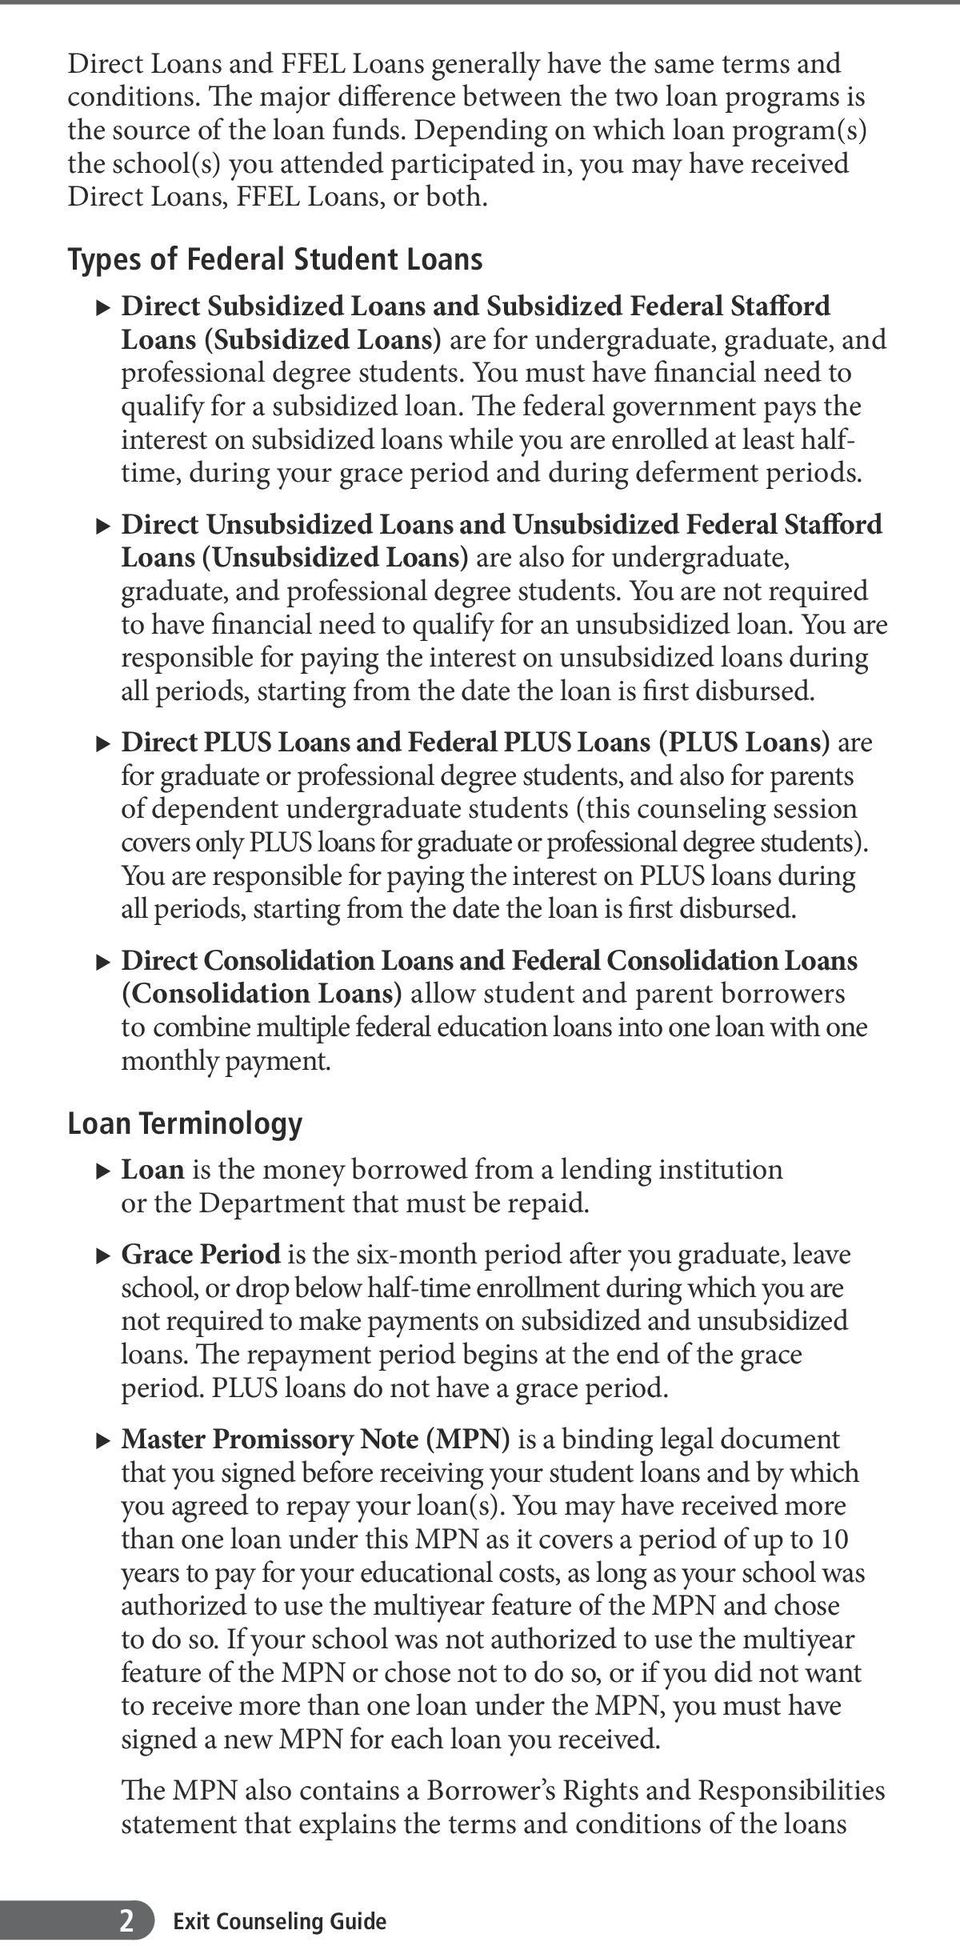 Types of Federal Student Loans u Direct Subsidized Loans and Subsidized Federal Stafford Loans (Subsidized Loans) are for undergraduate, graduate, and professional degree students.